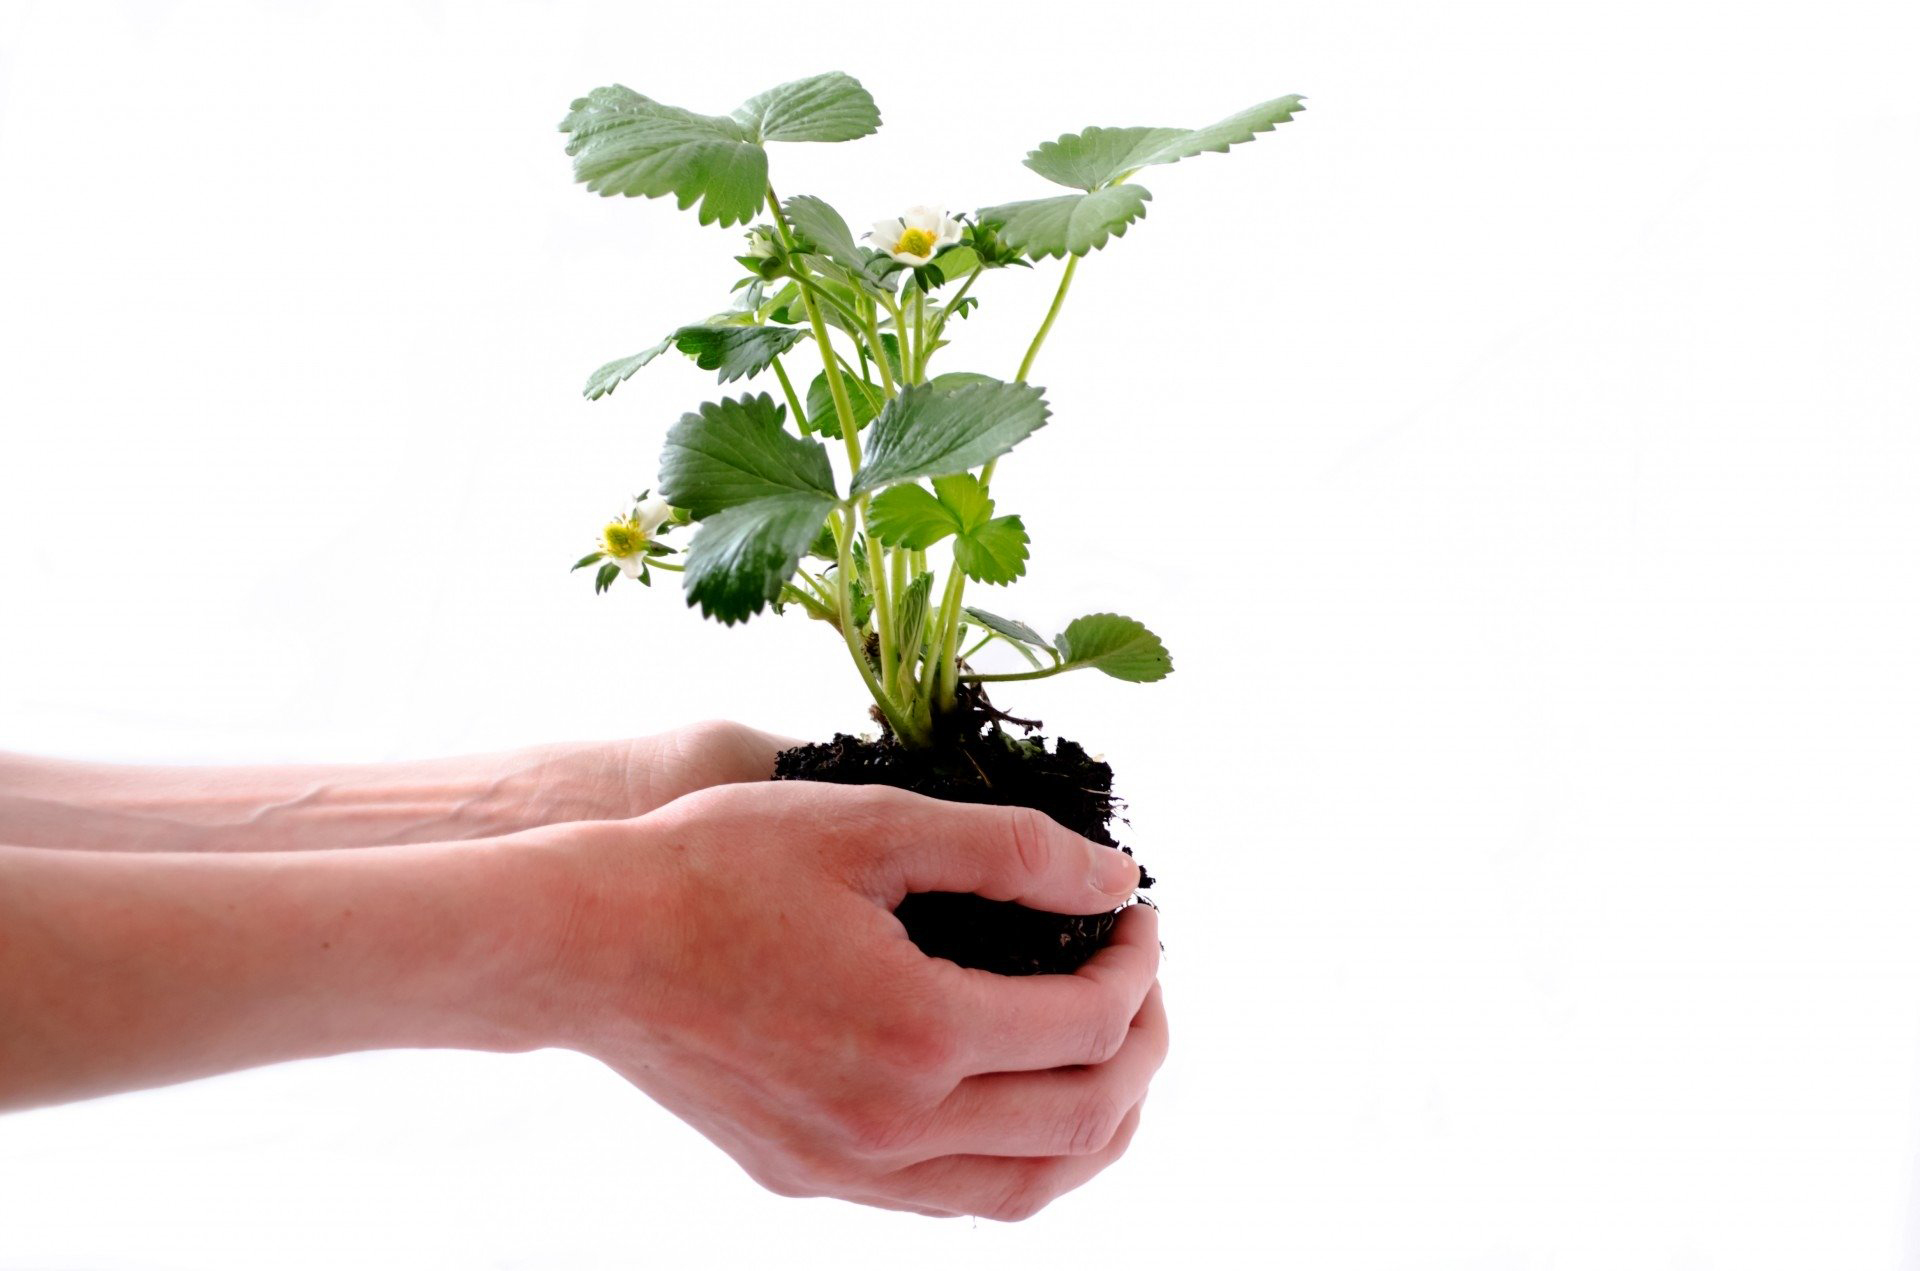 A pair of hands holding a plant in soil